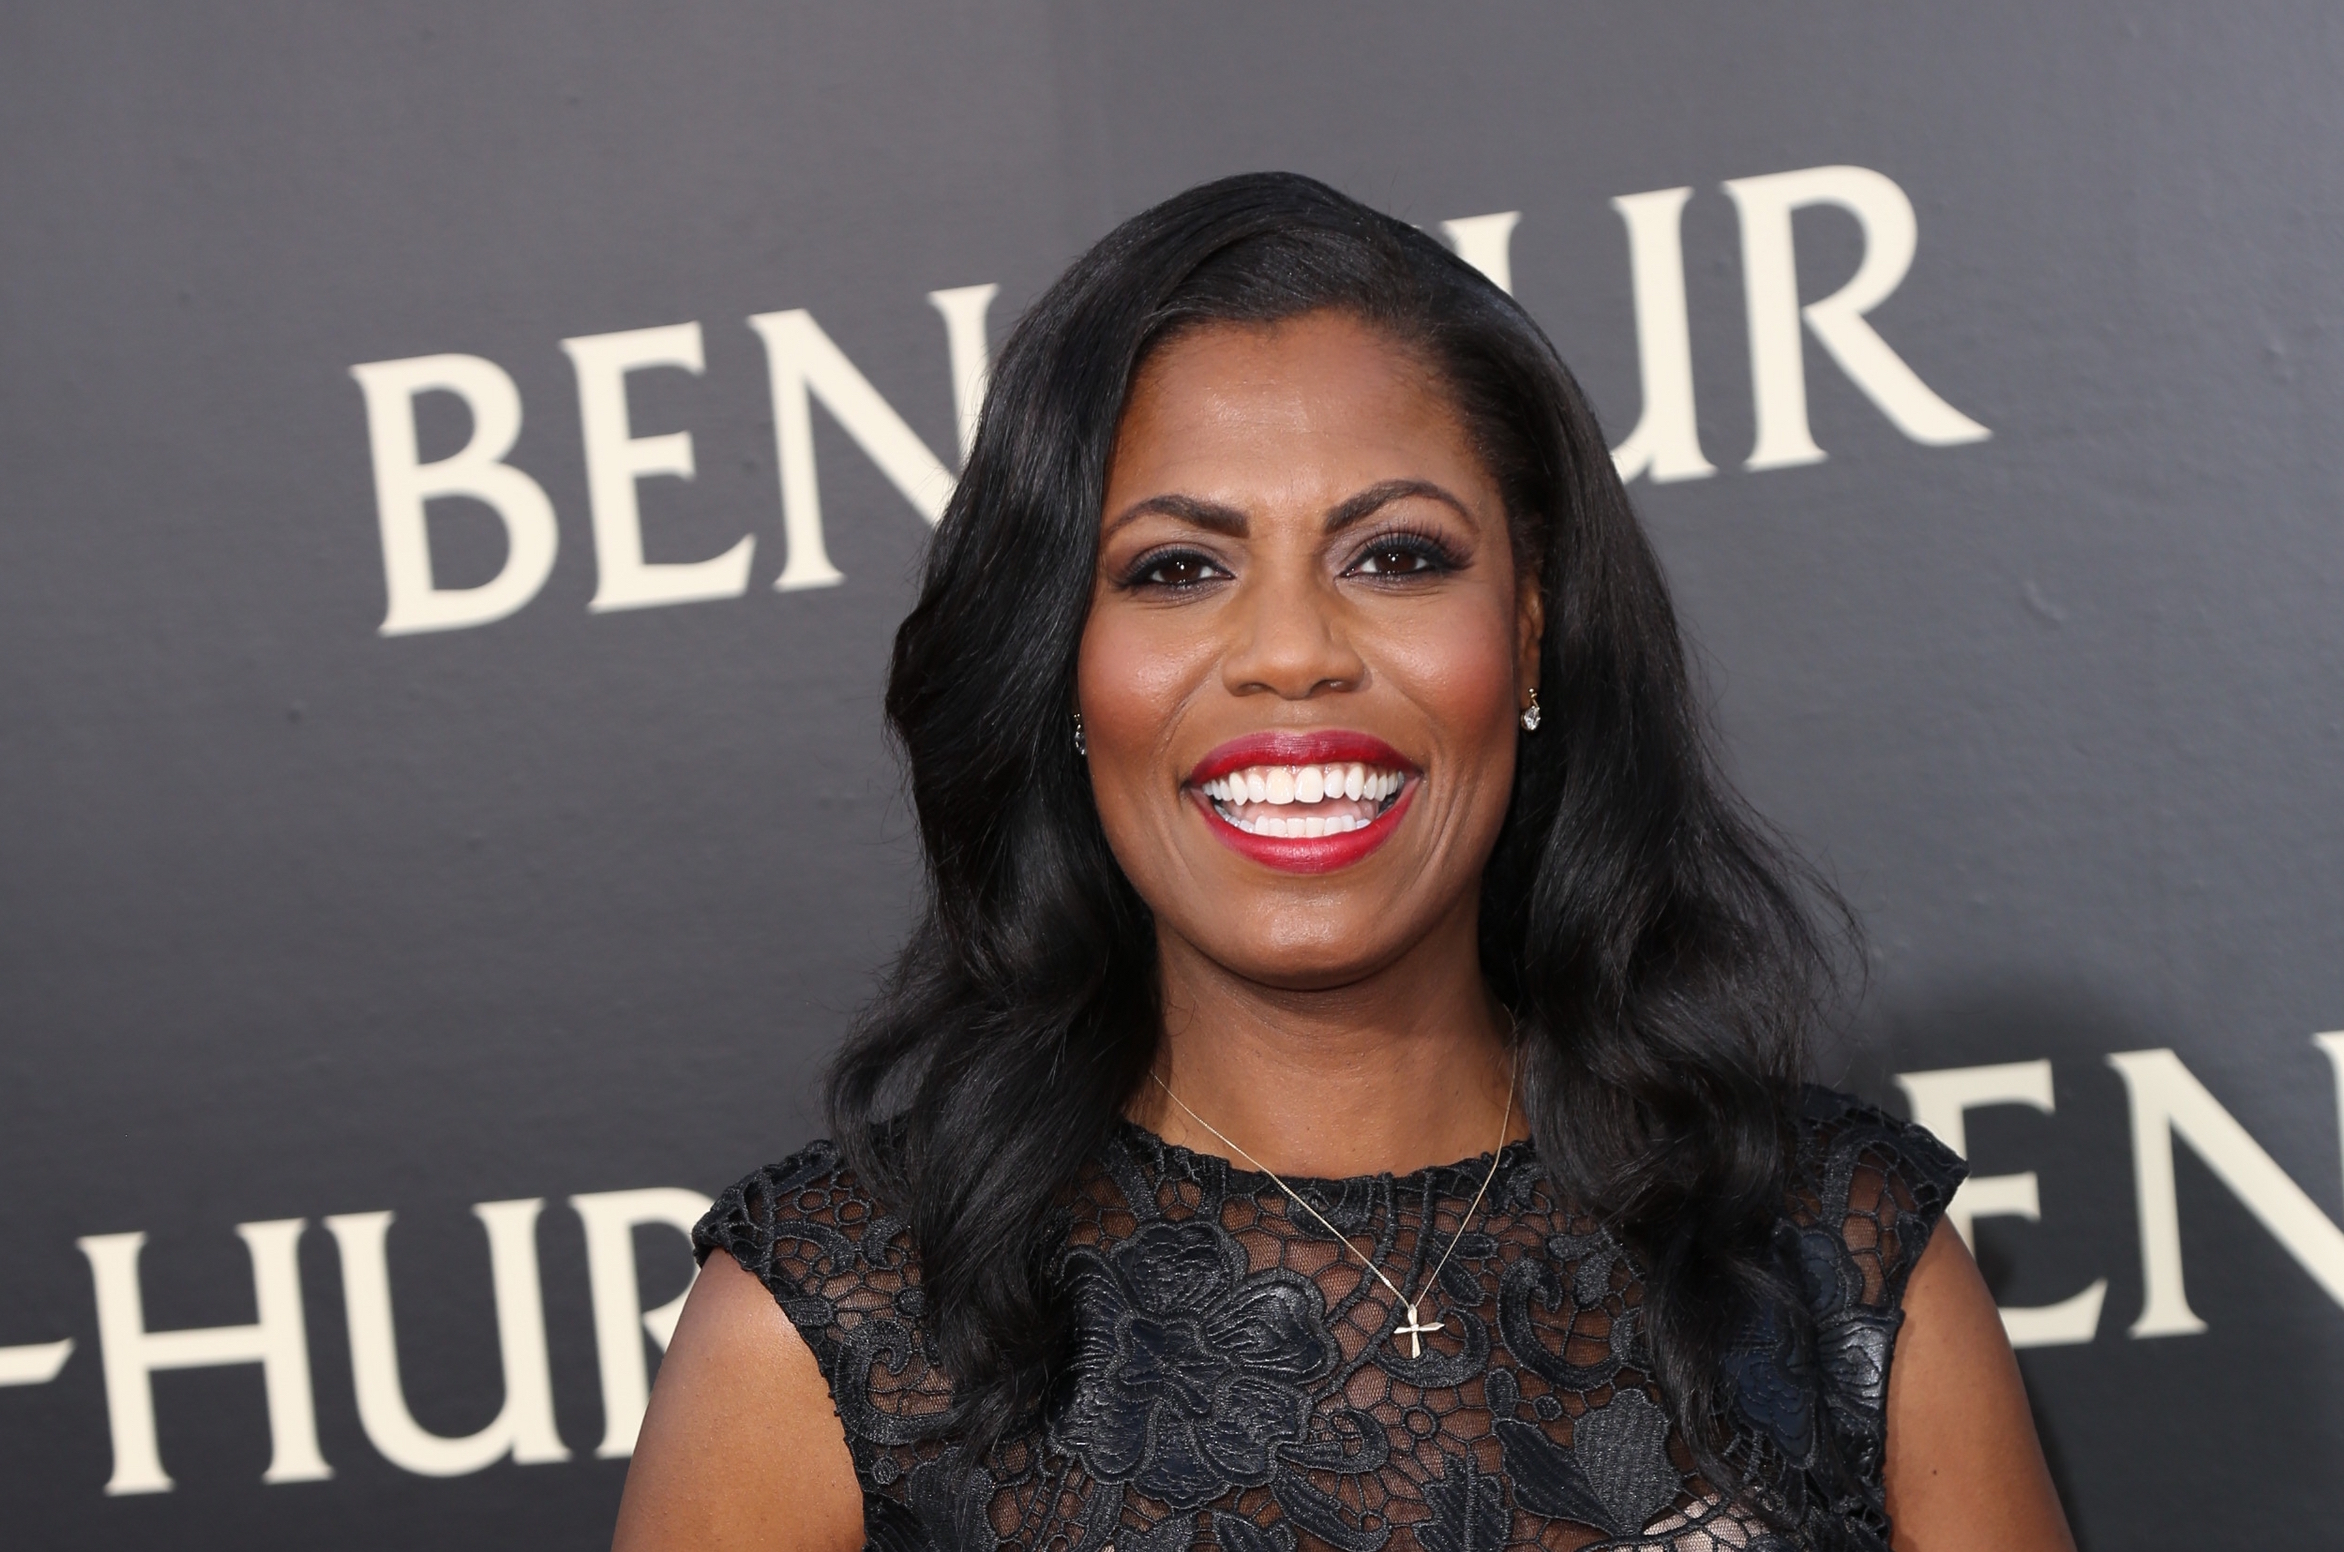 "08/16/2016 - Omarosa Manigault - ""Ben-Hur"" Los Angeles Premiere - Arrivals - TCL Chinese Theatre IMAX, Hollywood & Highland, 6925 Hollywood Boulevard - Hollywood, CA, USA - Keywords: Vertical, Adventure, Drama, Movie Premiere, Red Carpet Event, Arrival, Attending, People, Person, Portrait, Photography, Film Industry, Arts Culture and Entertainment, Celebrity, Celebrities, TCL Chinese Theater, LightWorkers Media, Metro-Goldwyn-Mayer (MGM), Paramount Pictures See, Los Angeles California Orientation: Portrait Face Count: 1 - False - Photo Credit: Guillermo Proano / PR Photos - Contact (1-866-551-7827) - Portrait Face Count: 1"